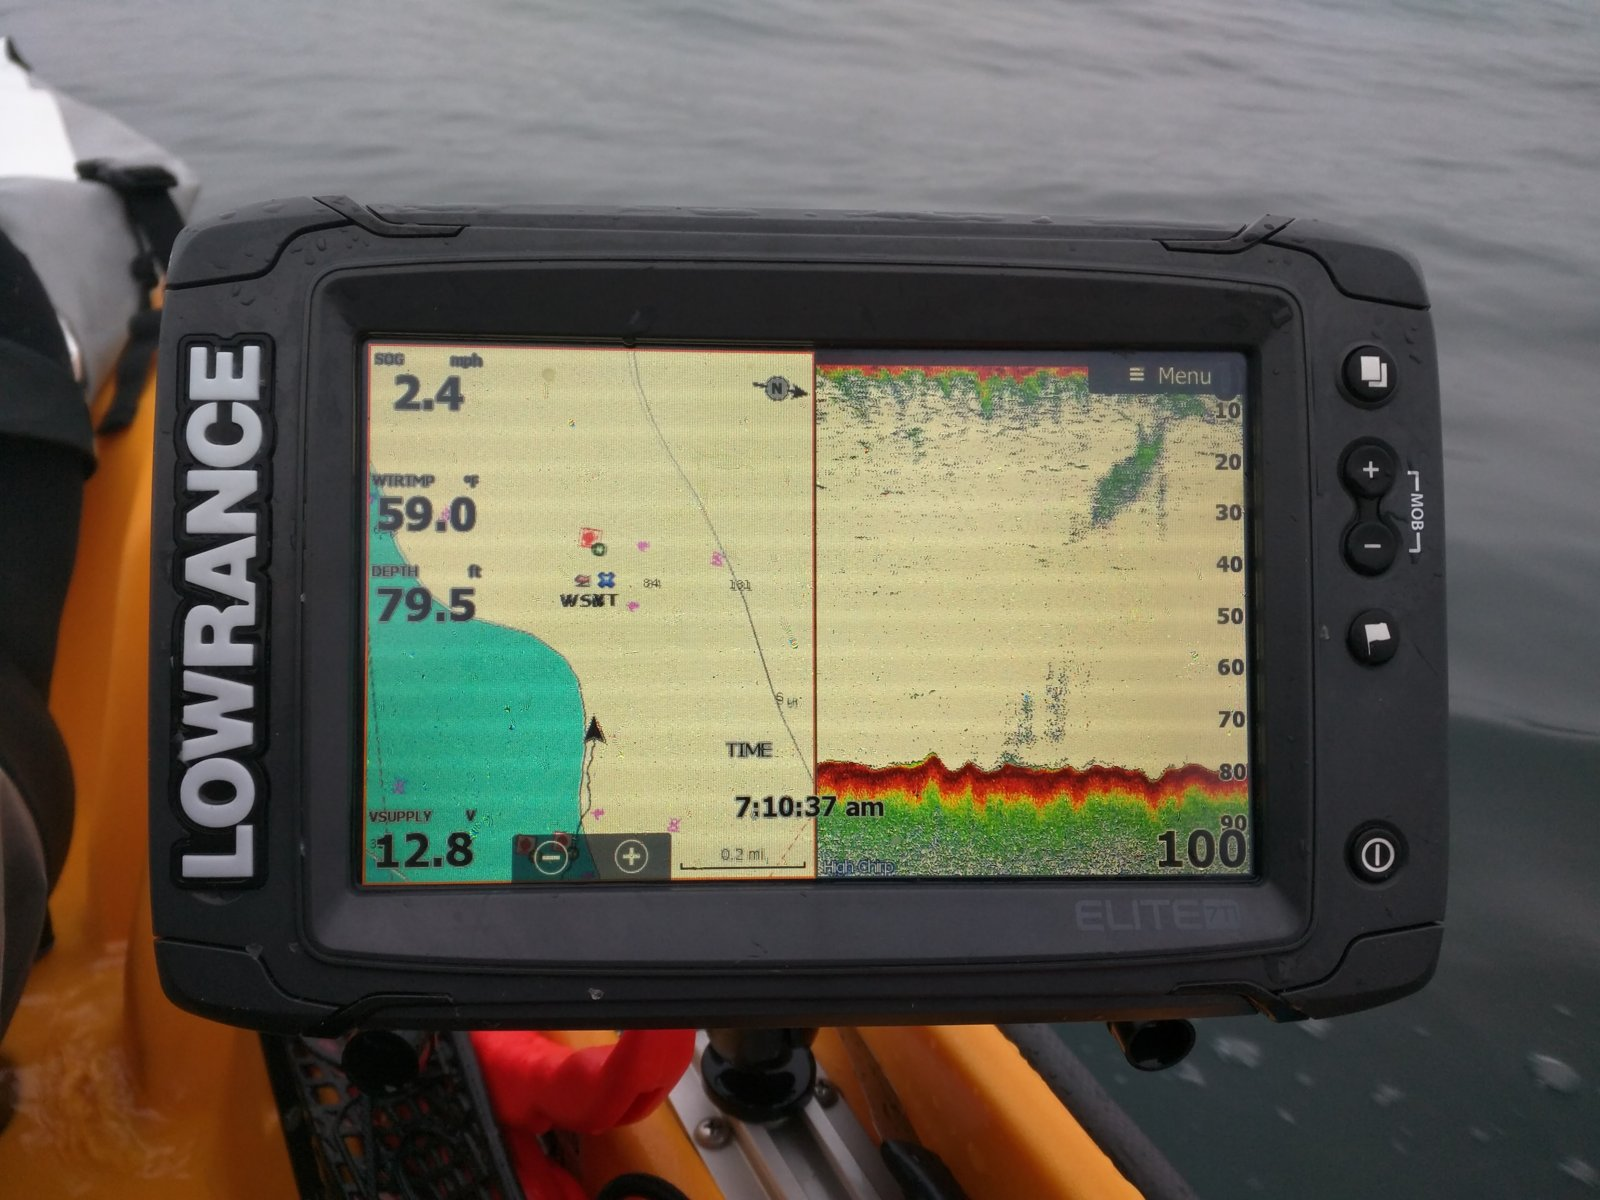 Fishfinder for Kayak- your recommendations? | San Diego Fishing Forums